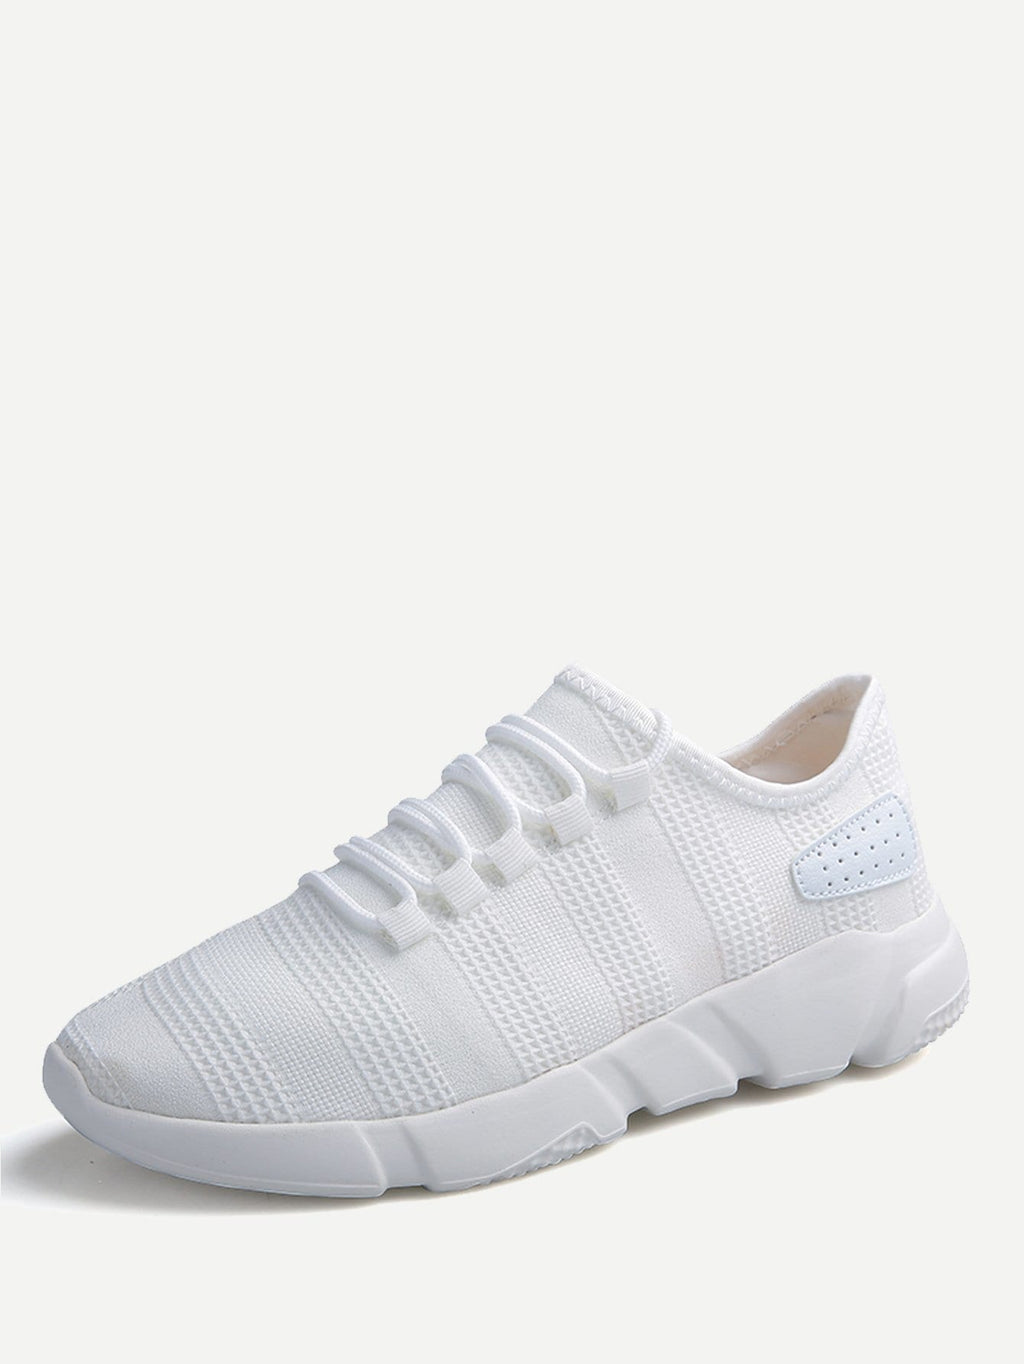 Men's Shoes - Lace Up Fly Knit Sneakers